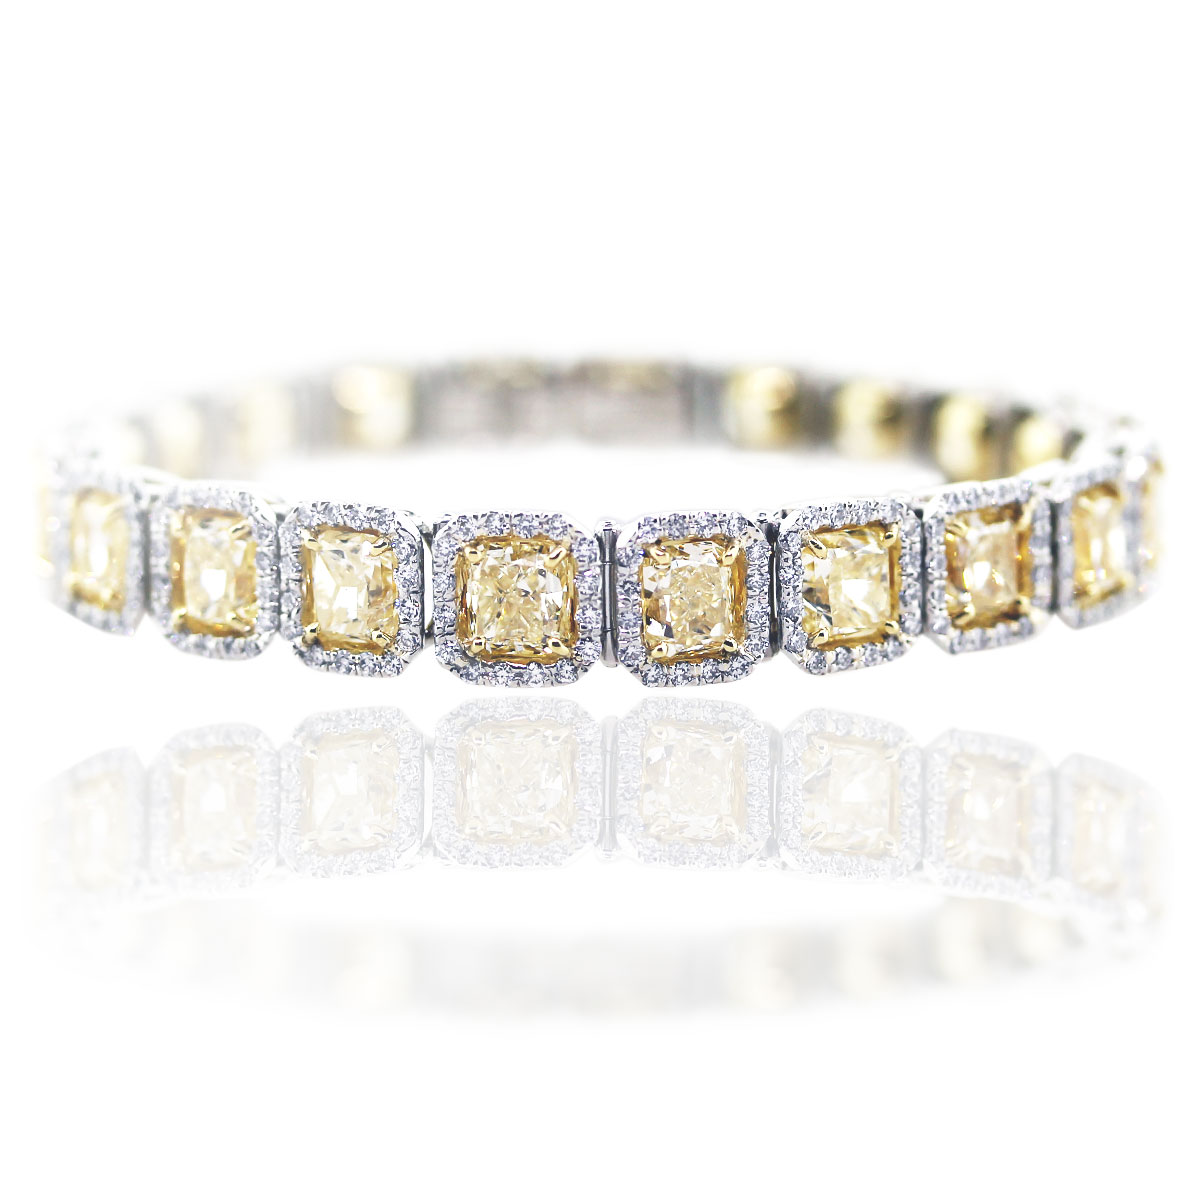 22 Carat Fancy Yellow Diamond Platinum Bracelet Boca Raton